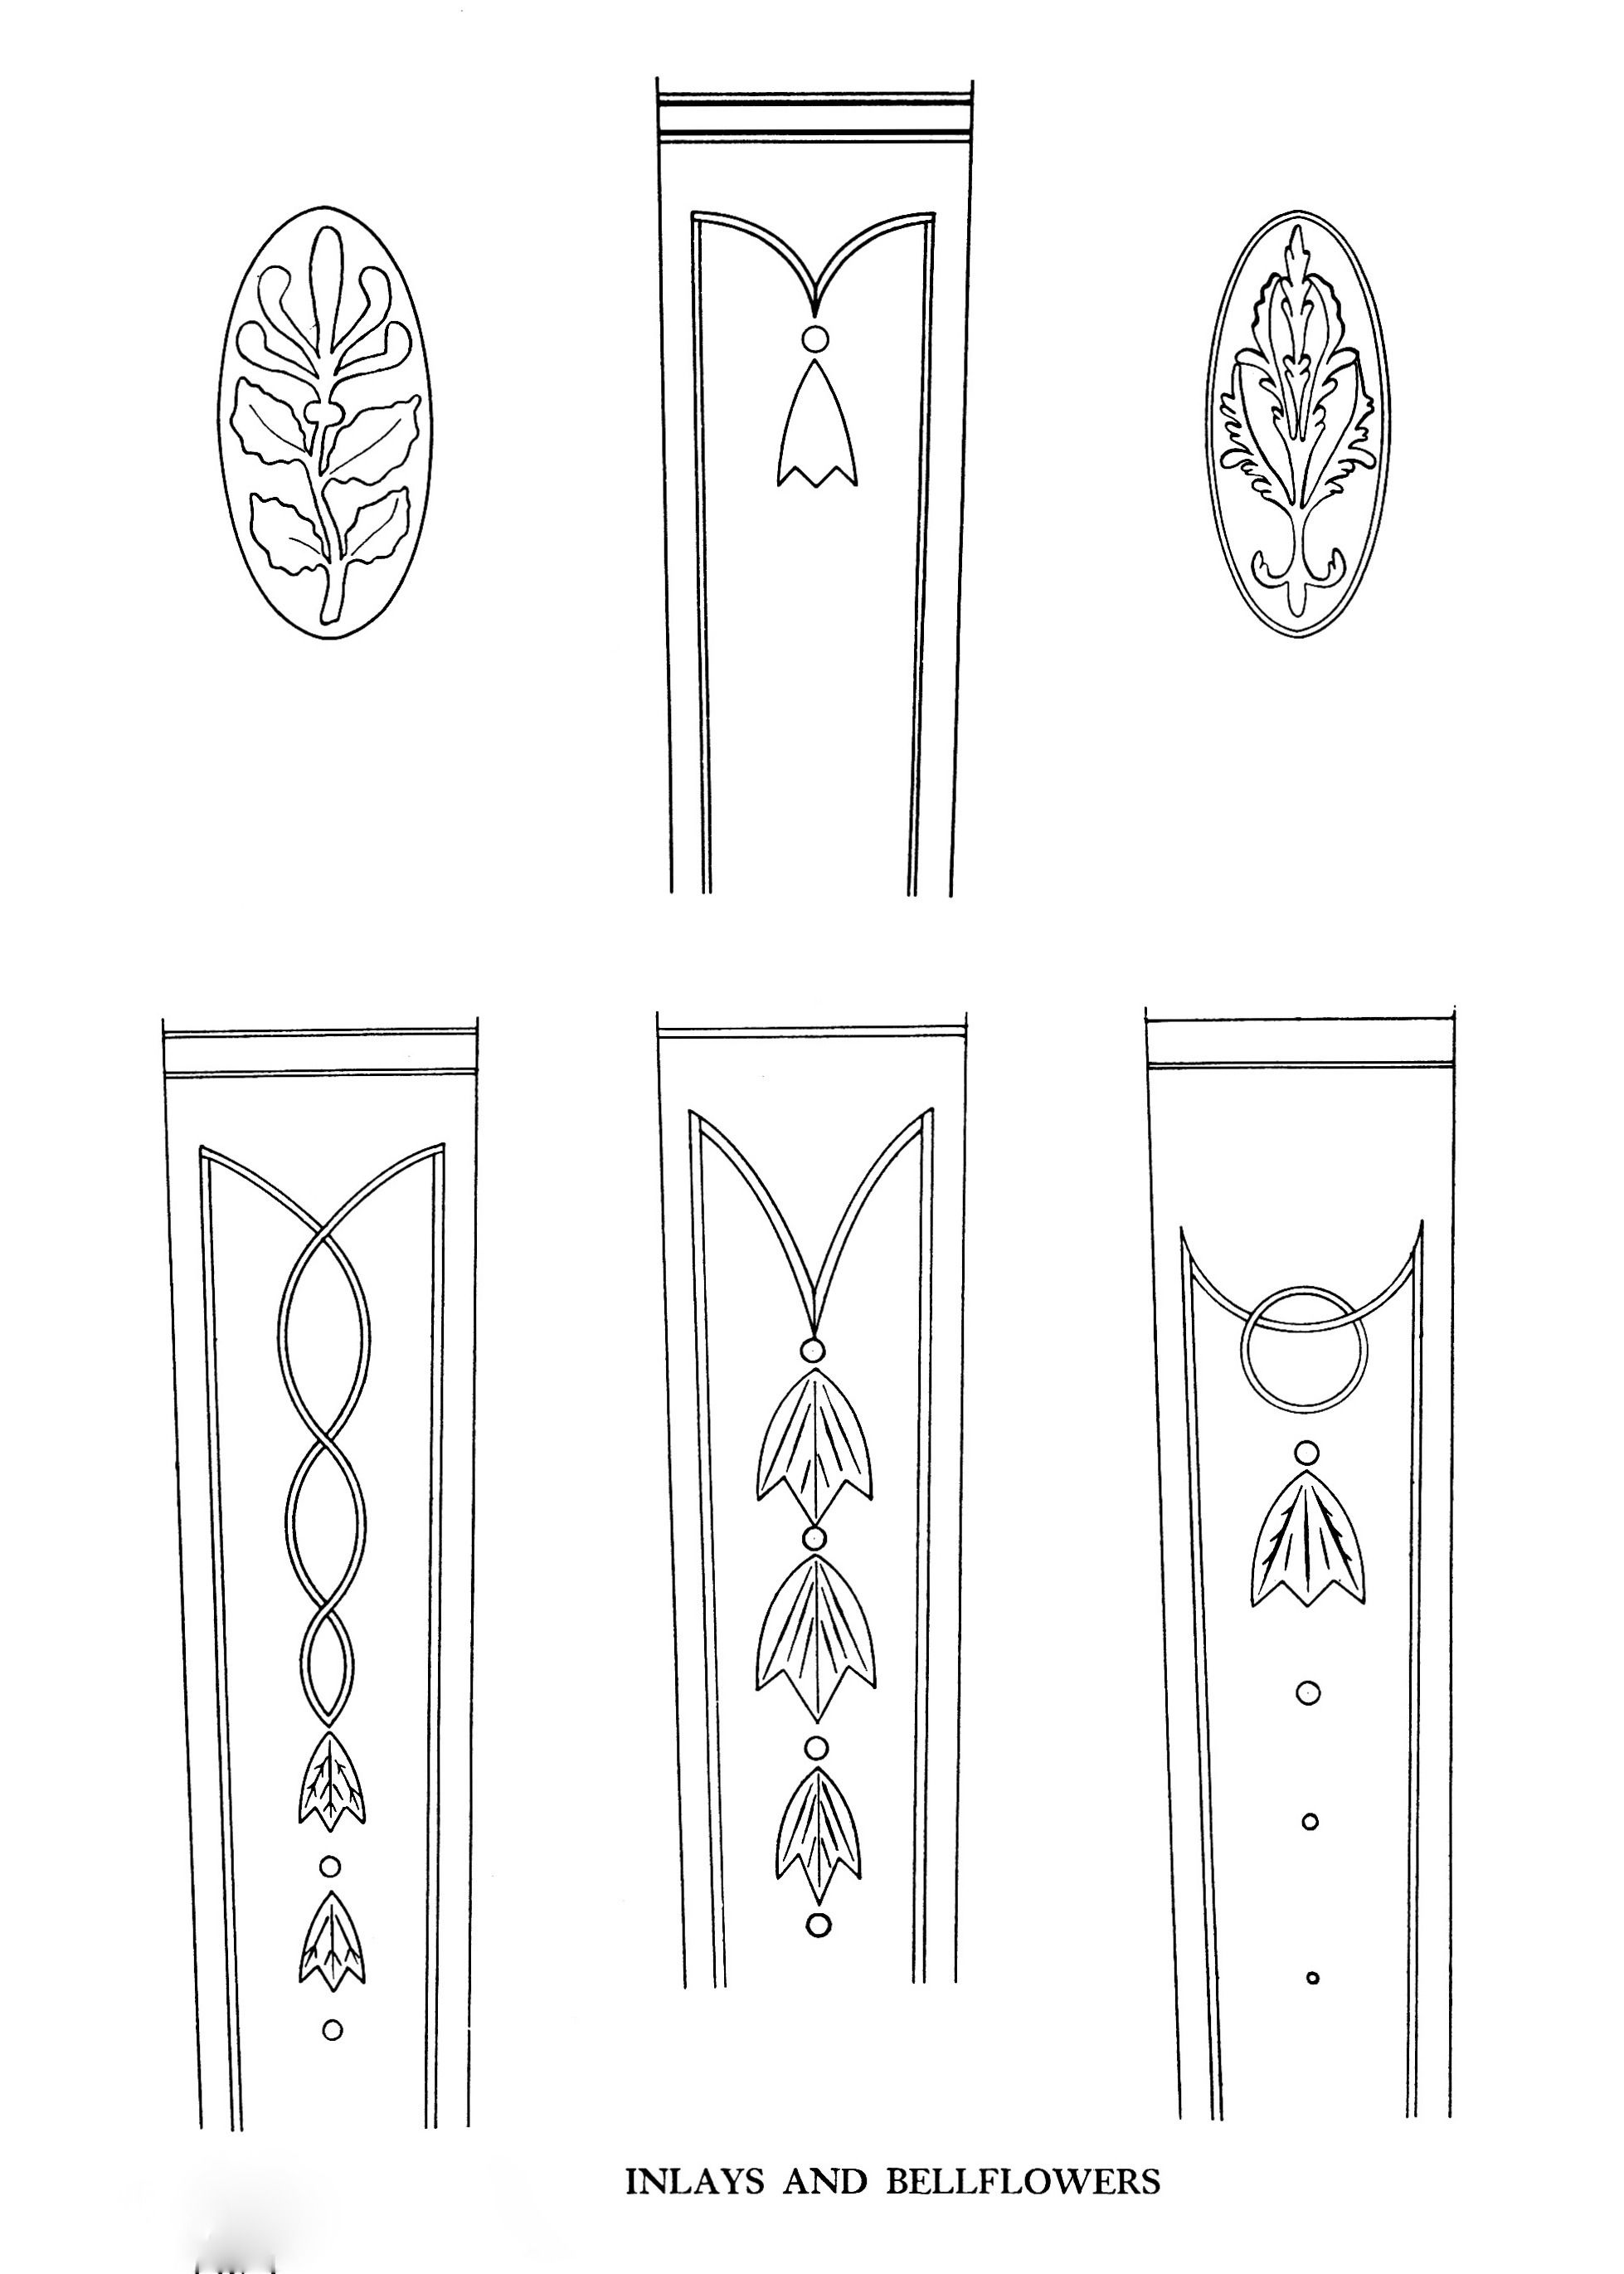 Inlays And Bellflowers